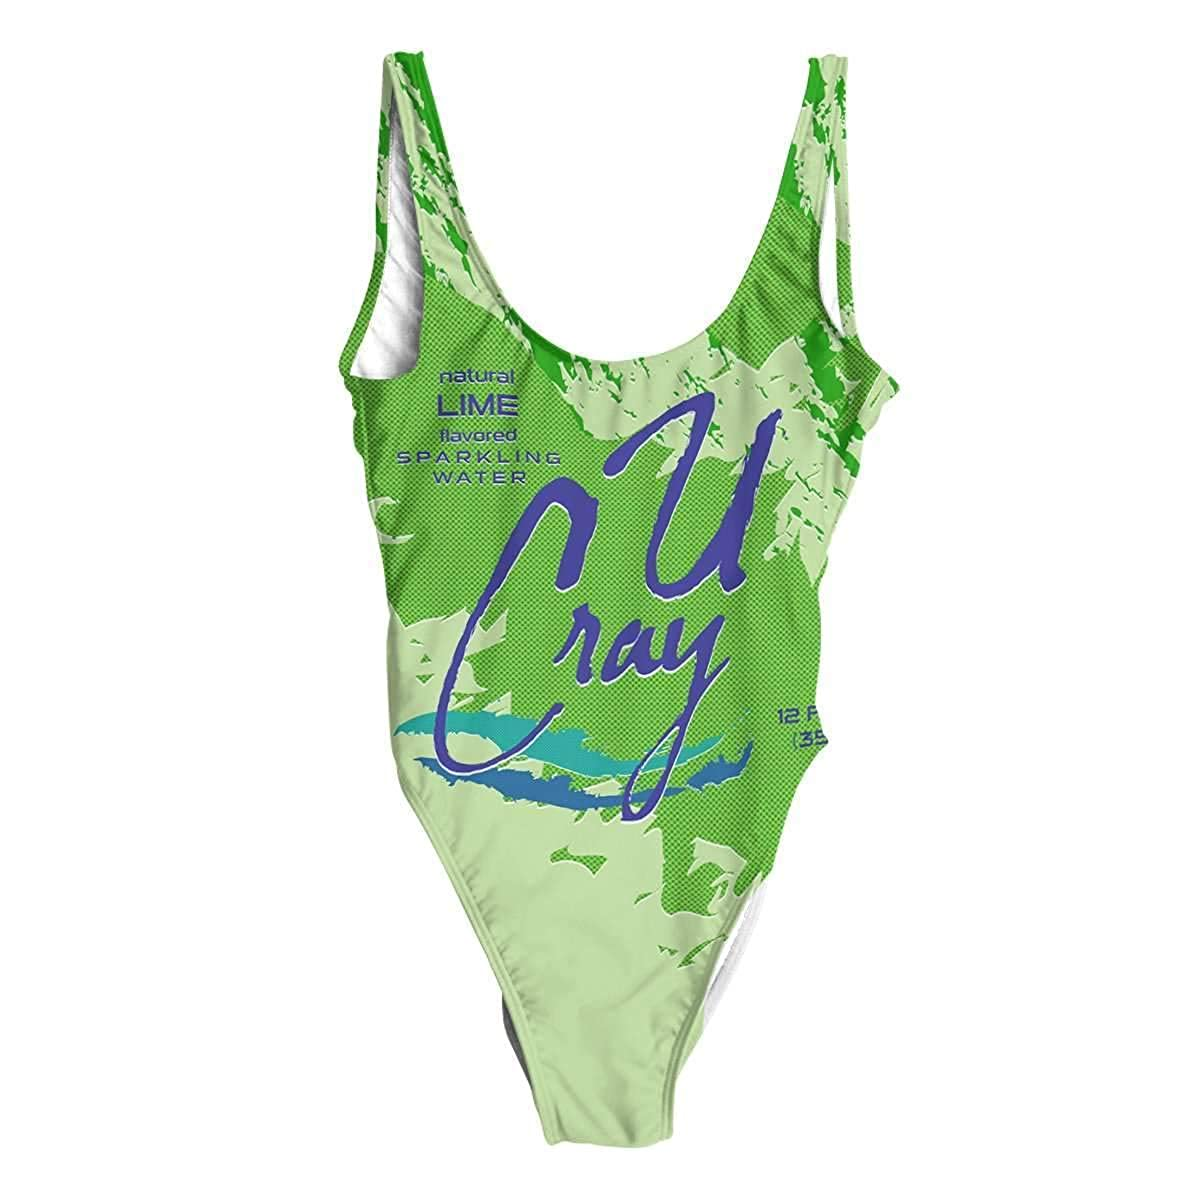 Beloved Shirts Lime Sparkling Water One Piece Swimsuit